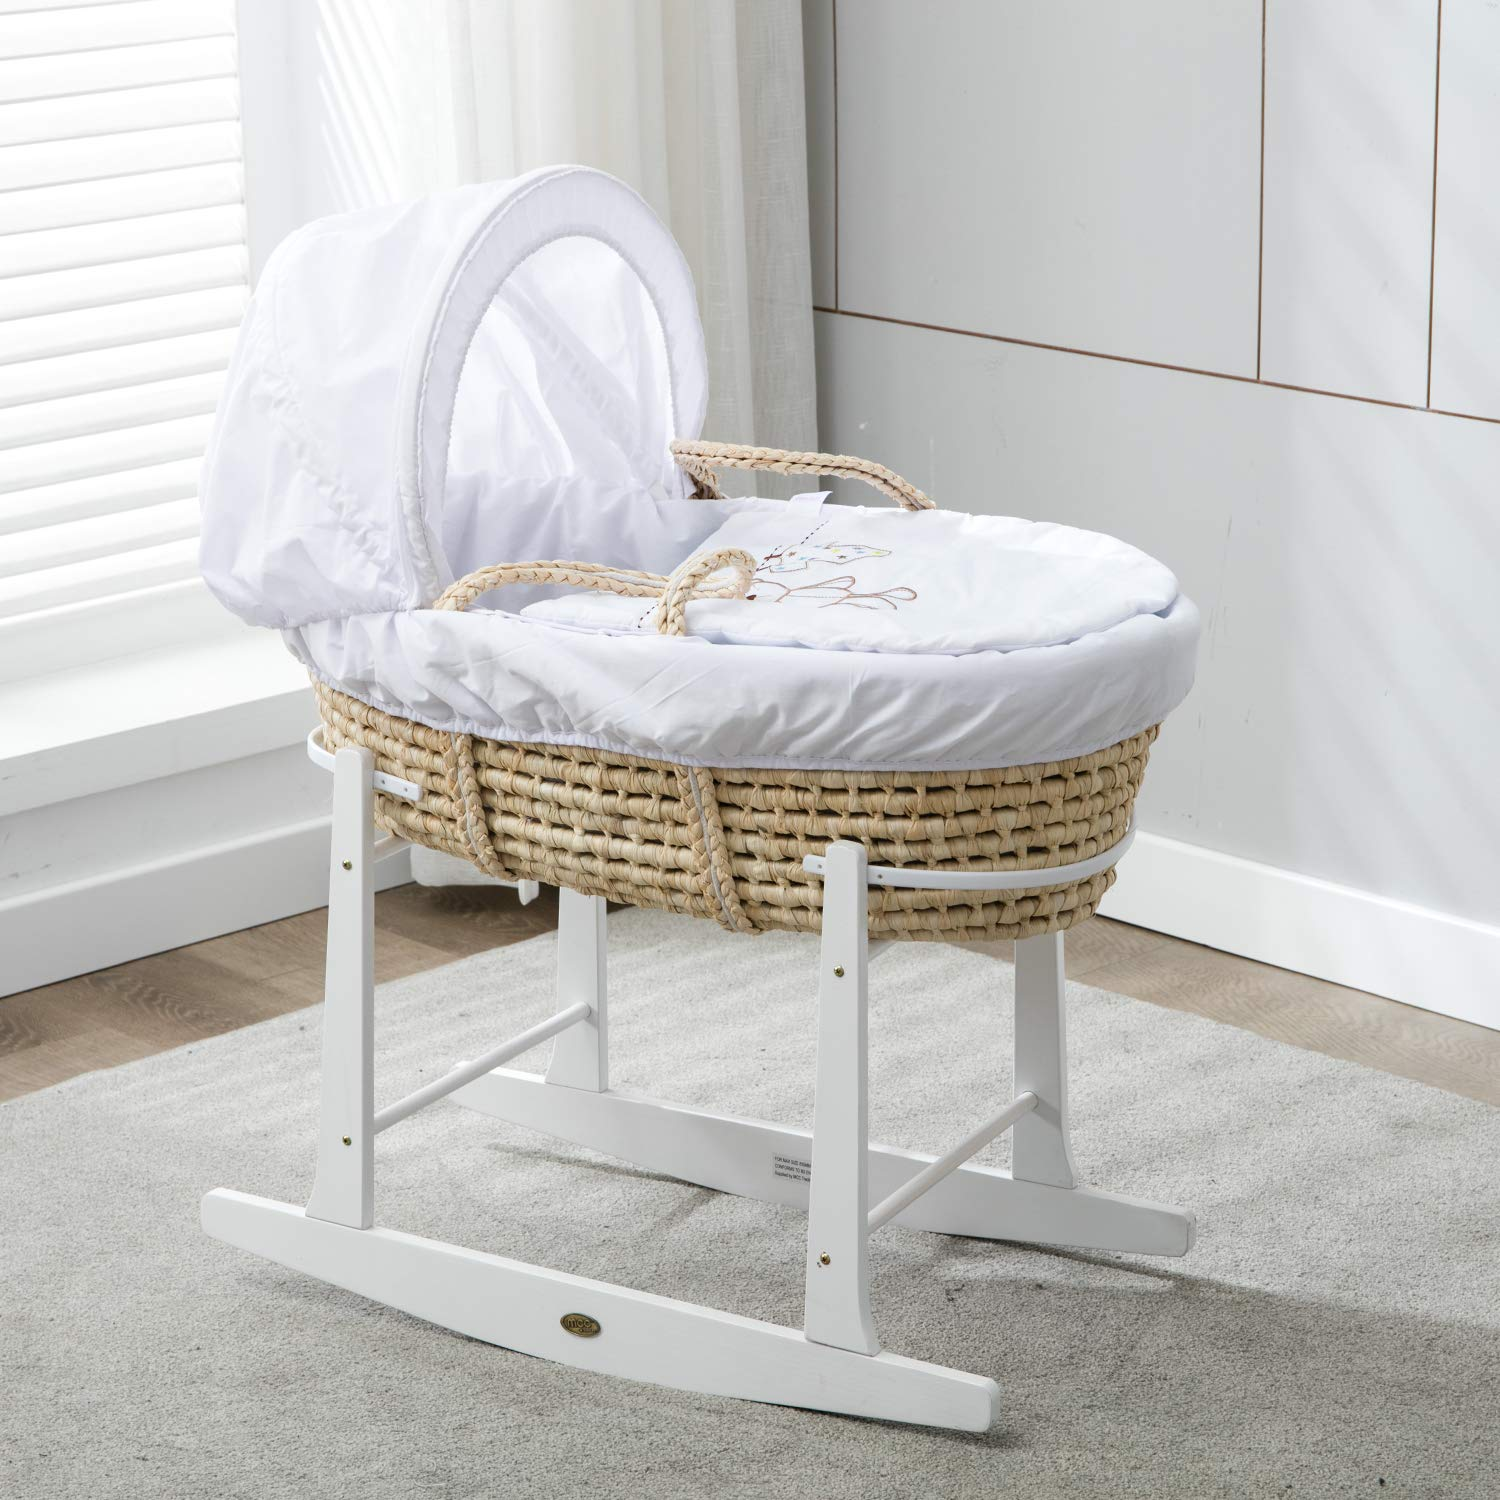 Full Set Natural Palm Moses Basket With Mattress, Cover and Rocking Stand MCC